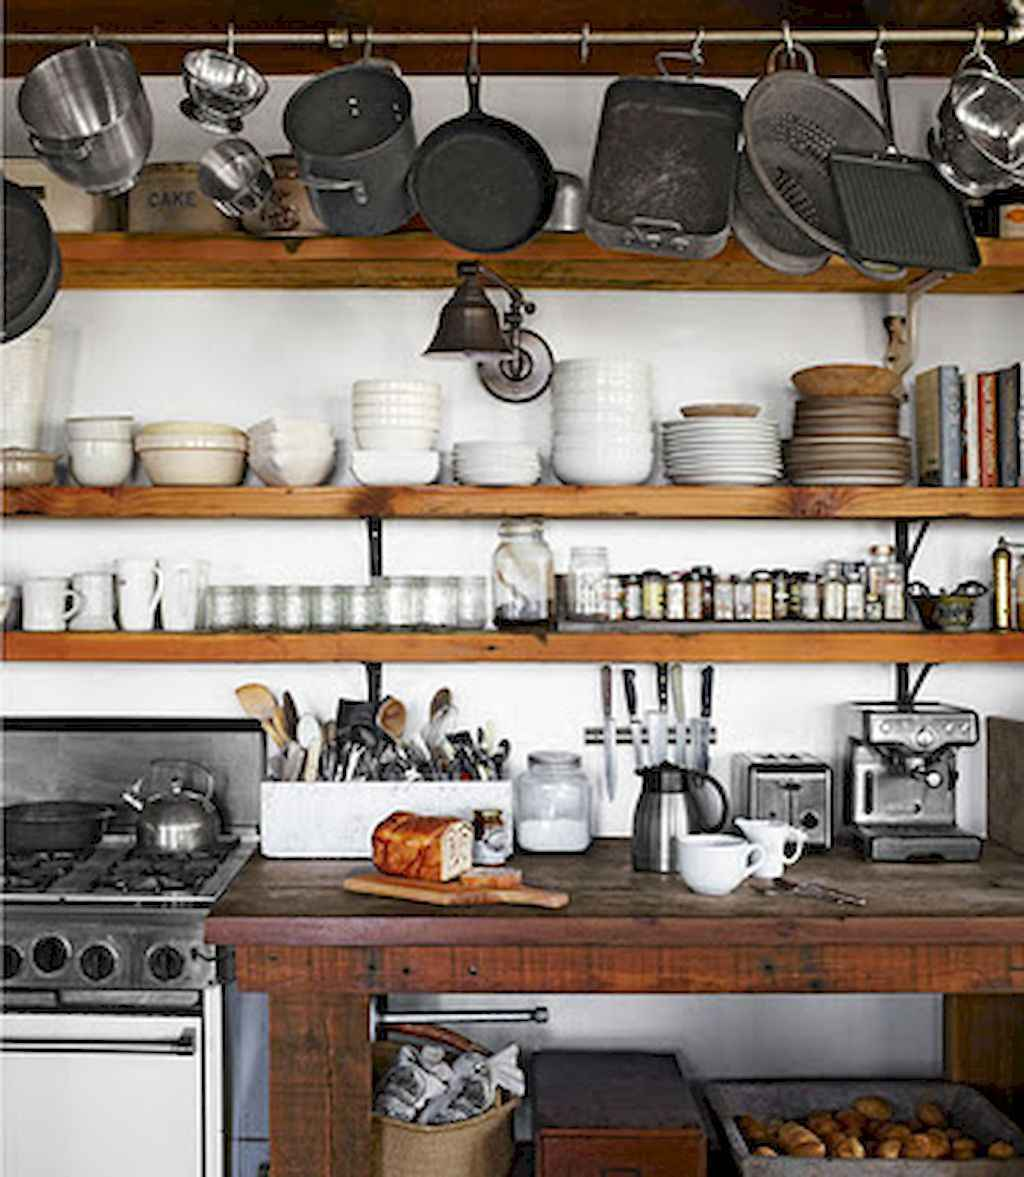 Clever small kitchen remodel and open shelves ideas (3)